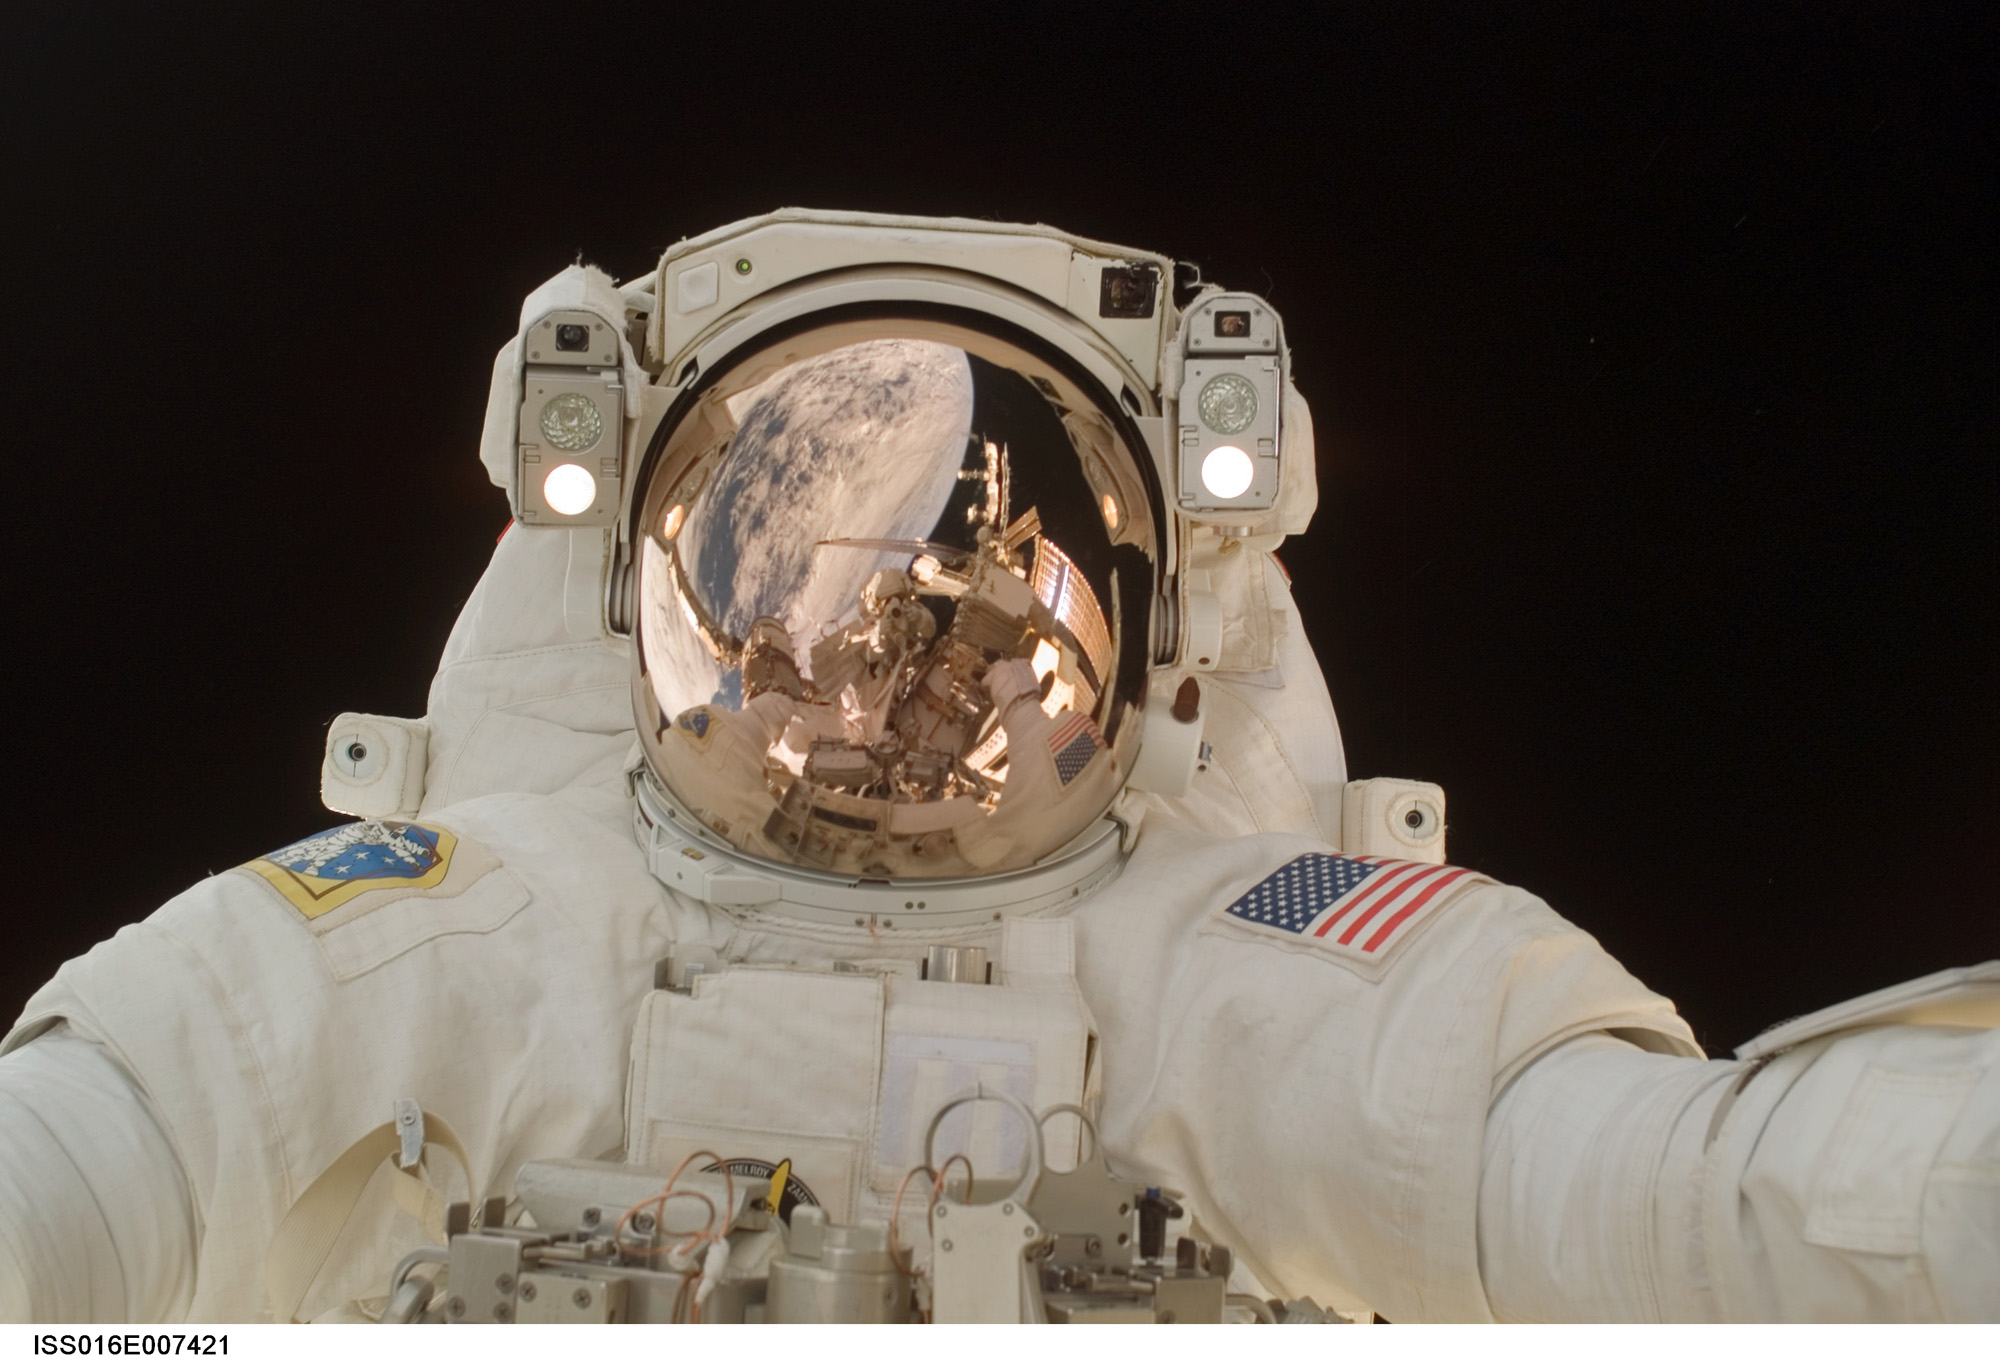 NASA Had a Record Shattering Round of Astronaut Applicants